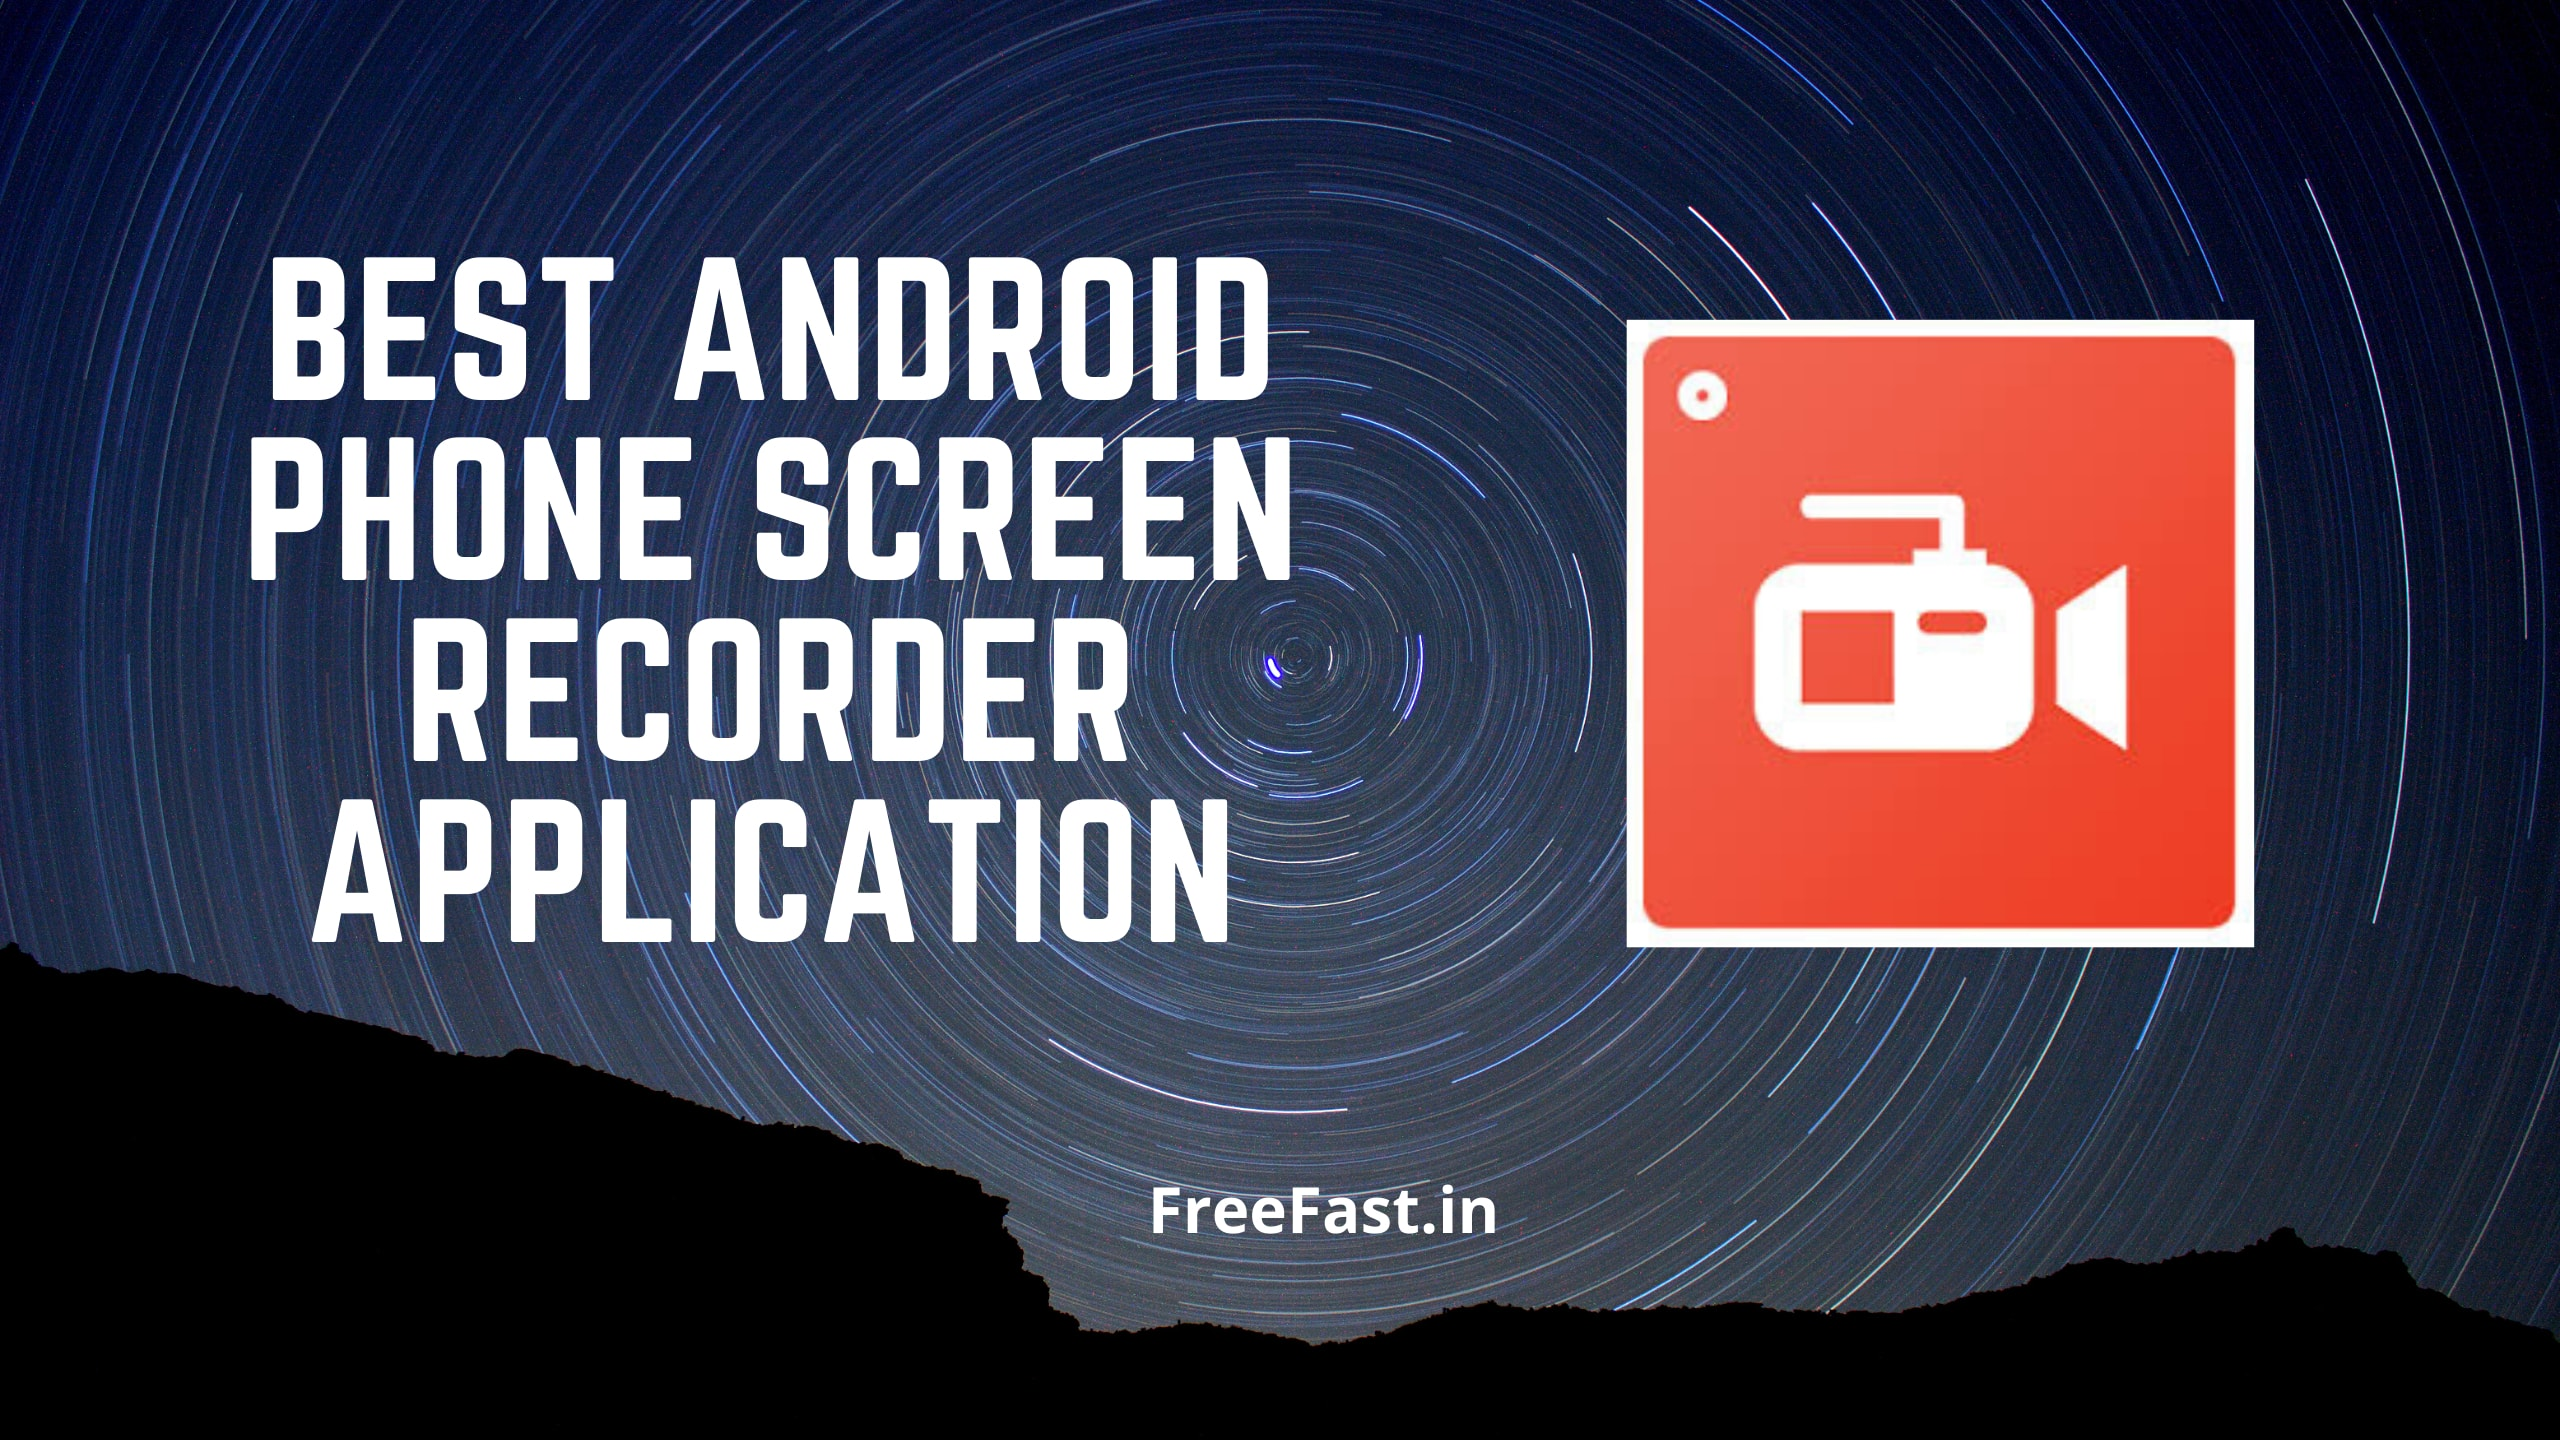 Best Android Phone Screen Recorder Application